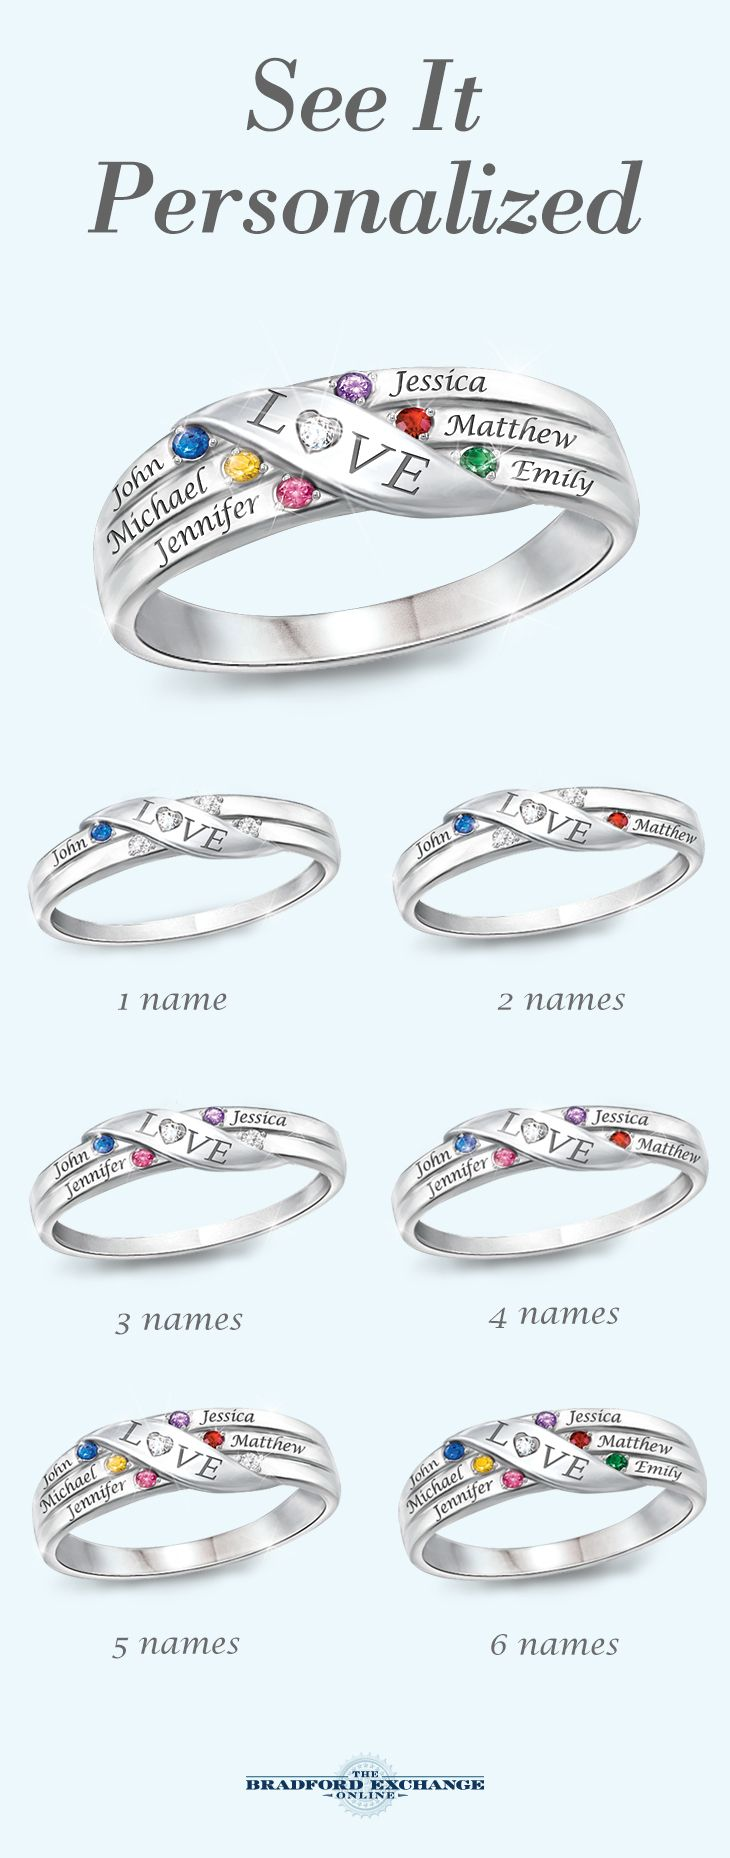 Looking for a meaningful Christmas gift for Mom? We offer free personalization with up to 6 crystal birthstones and 6 engraved names. Plus, we offer the best guarantee in the business with jewelry returns up to 120 days and free return shipping. Only from The Bradford Exchange. Hurry to get it on time for Christmas morning!